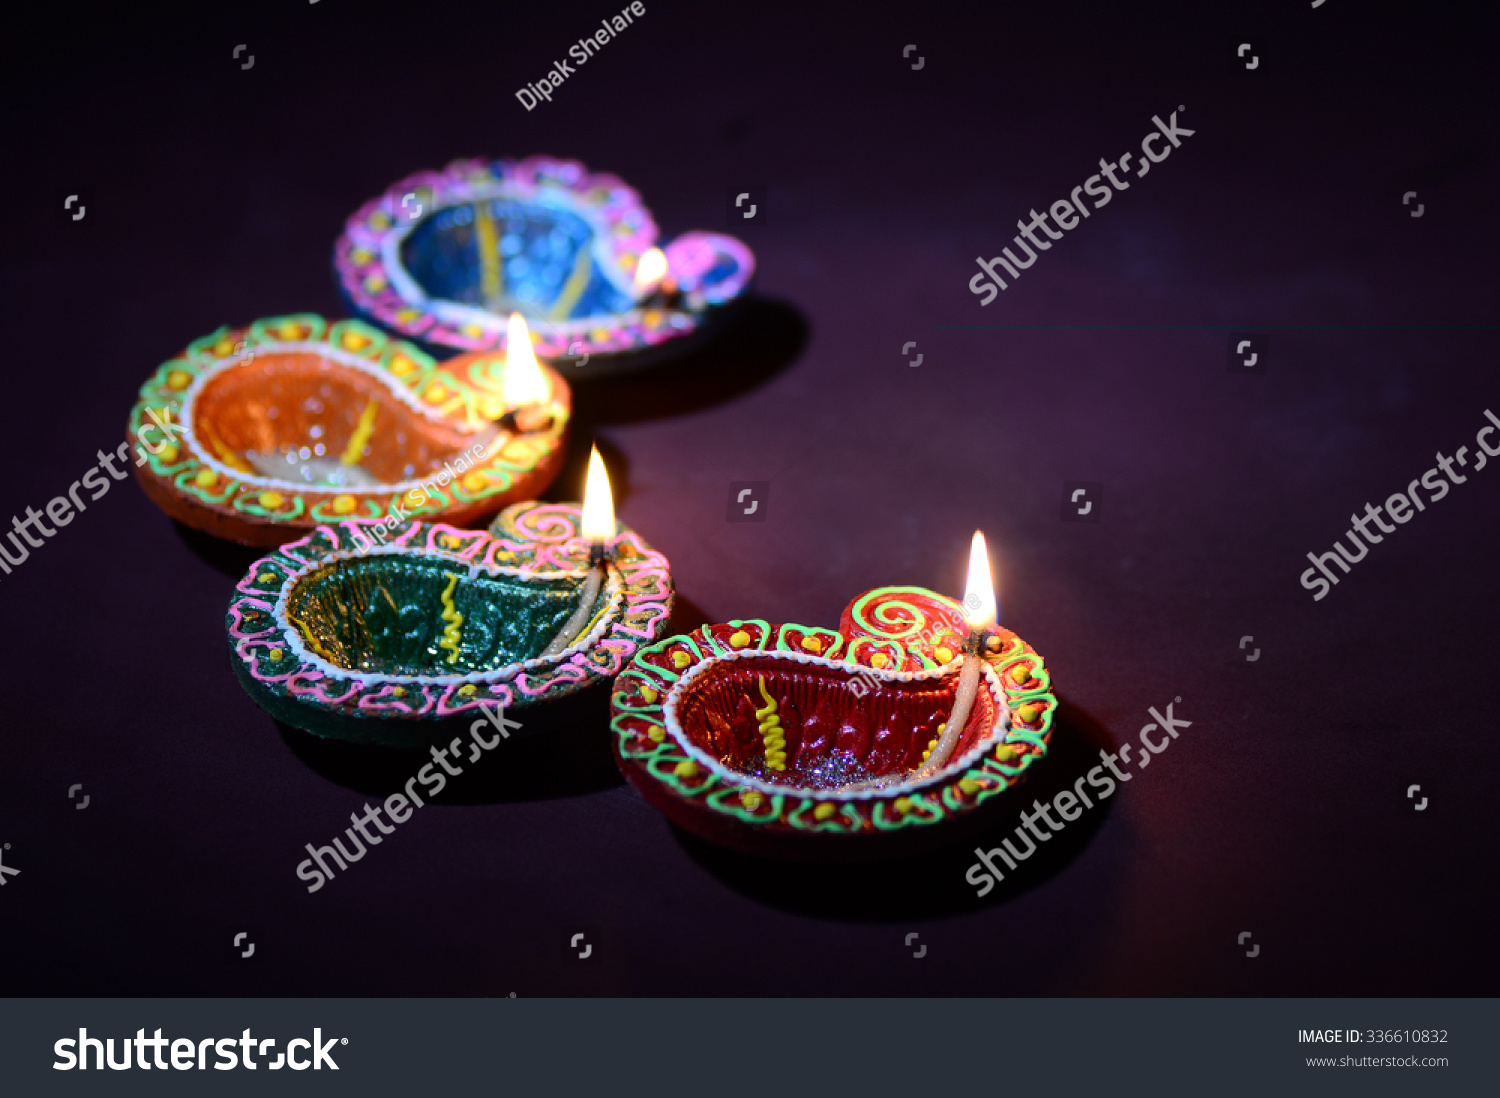 Earthen Lamp Diwali Colorful Clay Diya Lantern Lamps Lit Stock Photo 336610832